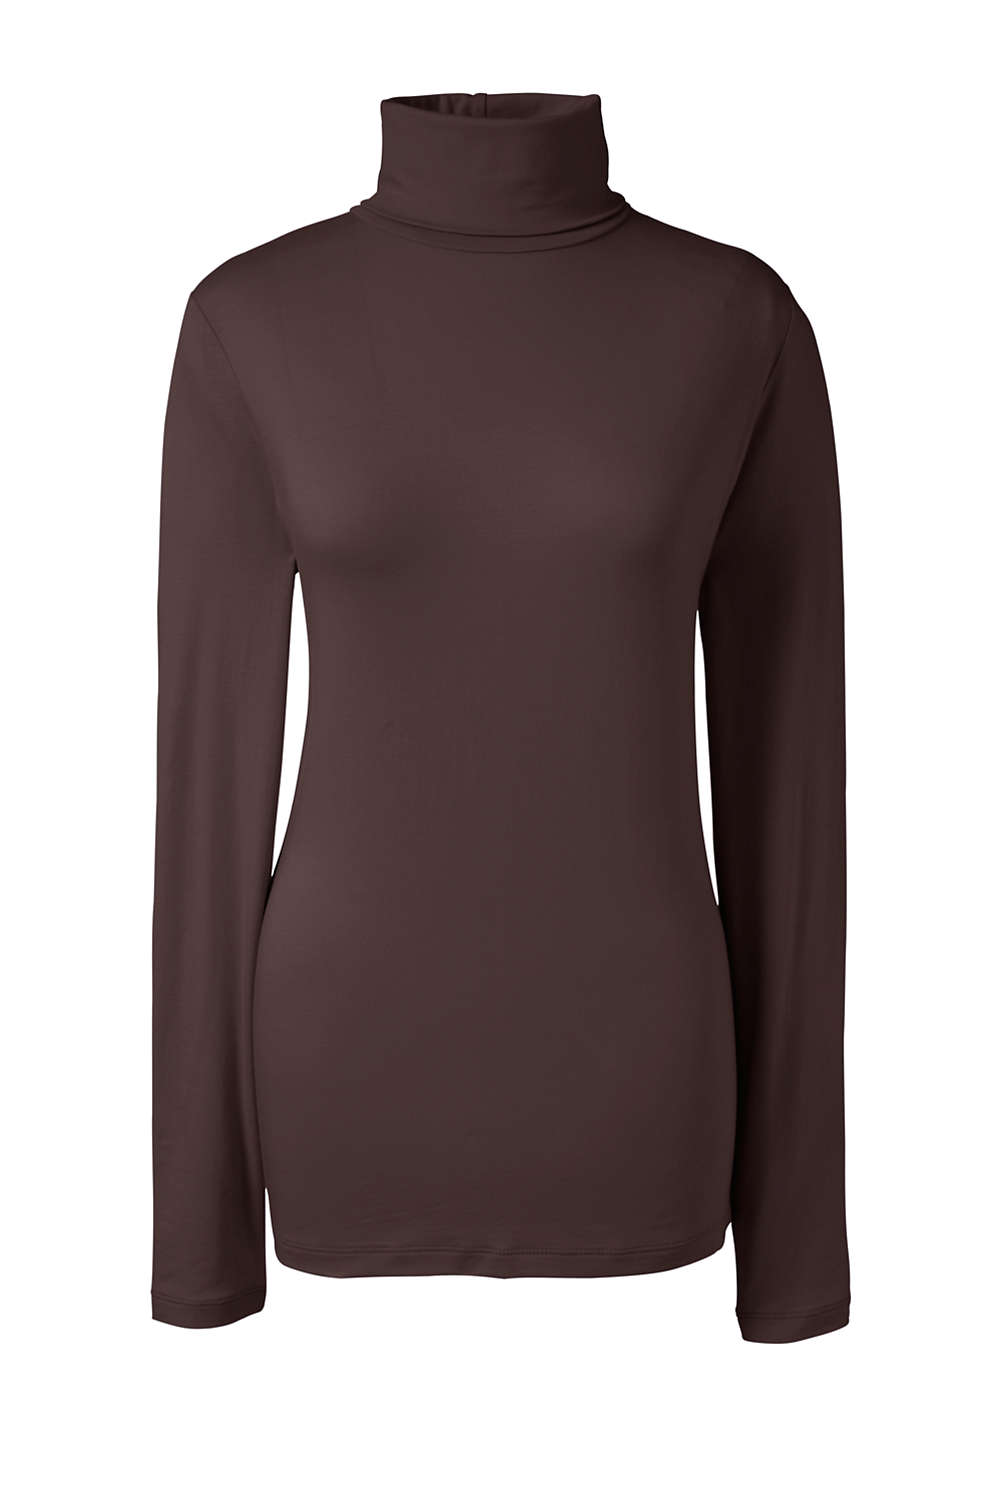 75084043de7f09 Women s Plus Size Lightweight Fitted Turtleneck Layering from Lands  End